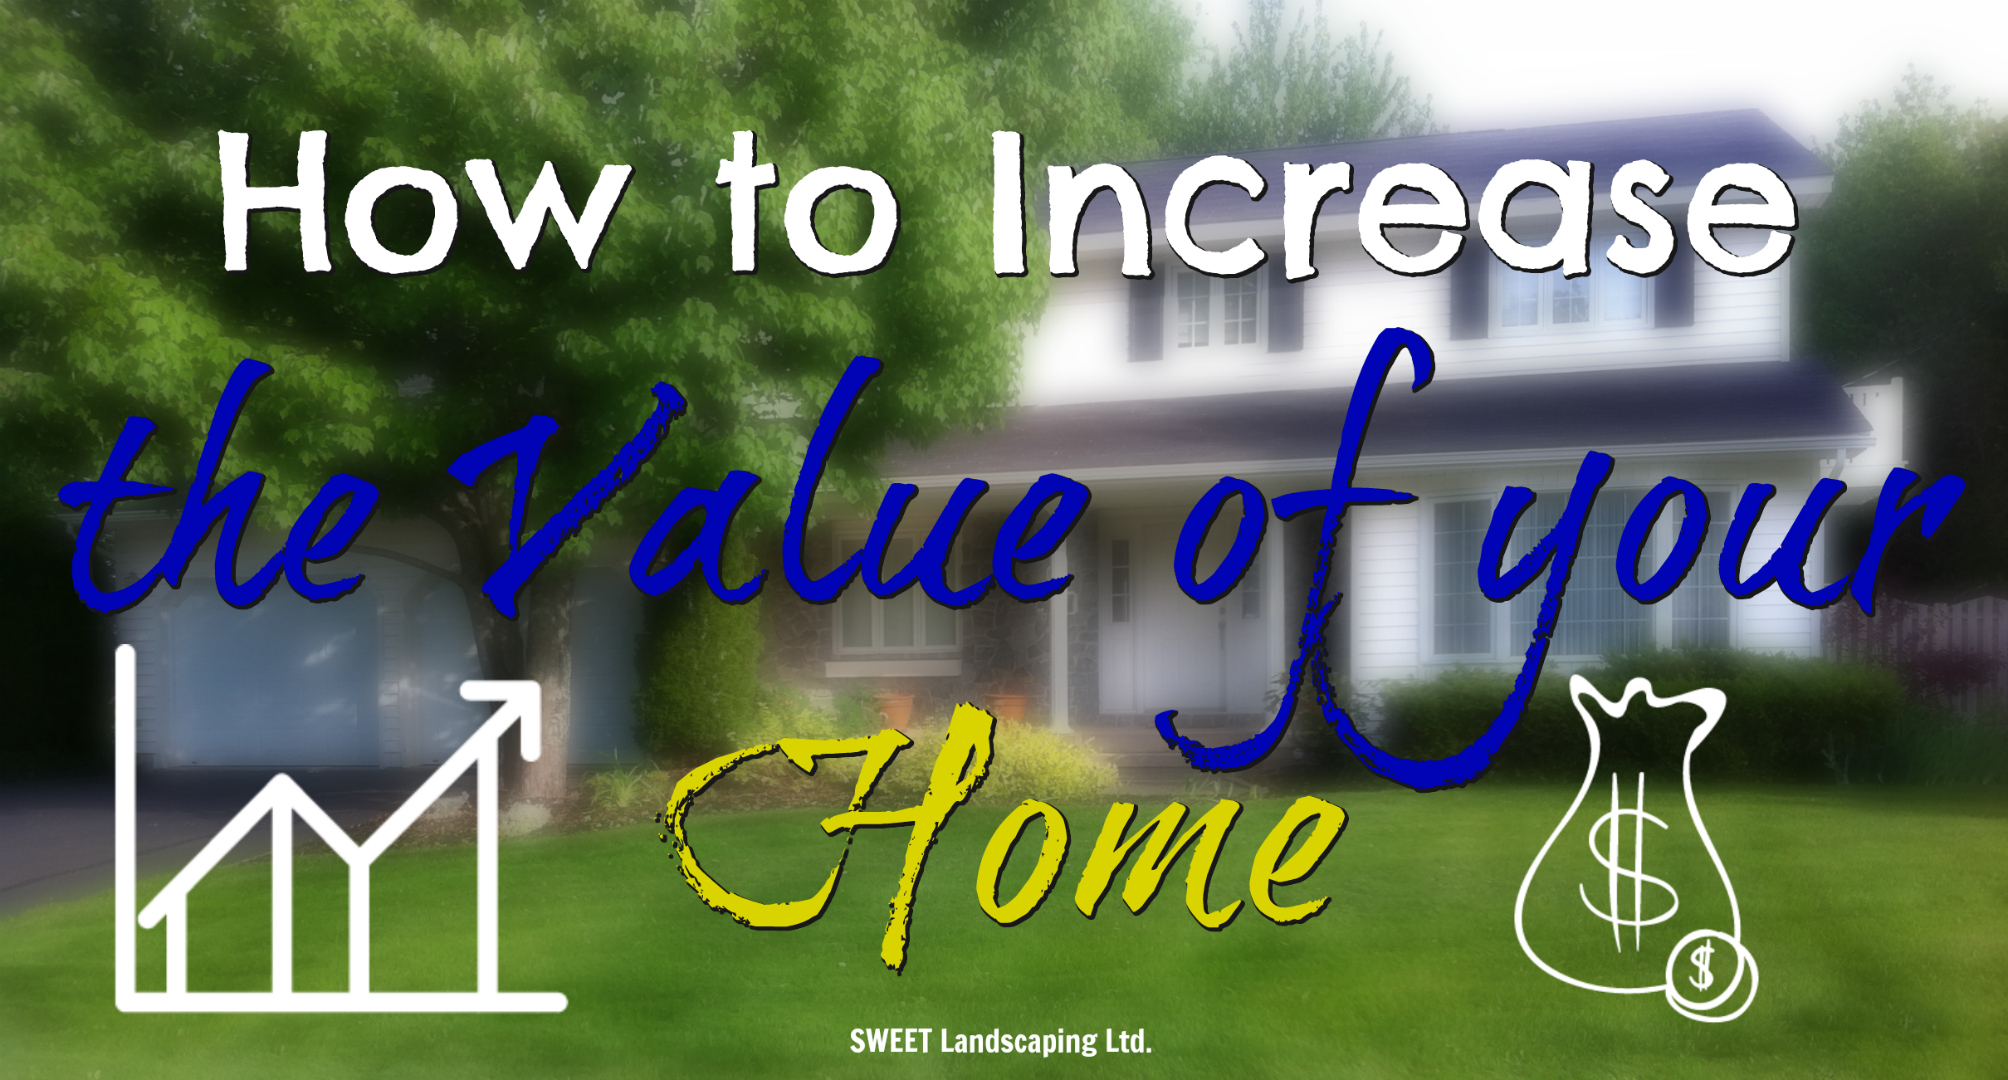 How to increase the value of your home sweet landscaping for How to increase home value